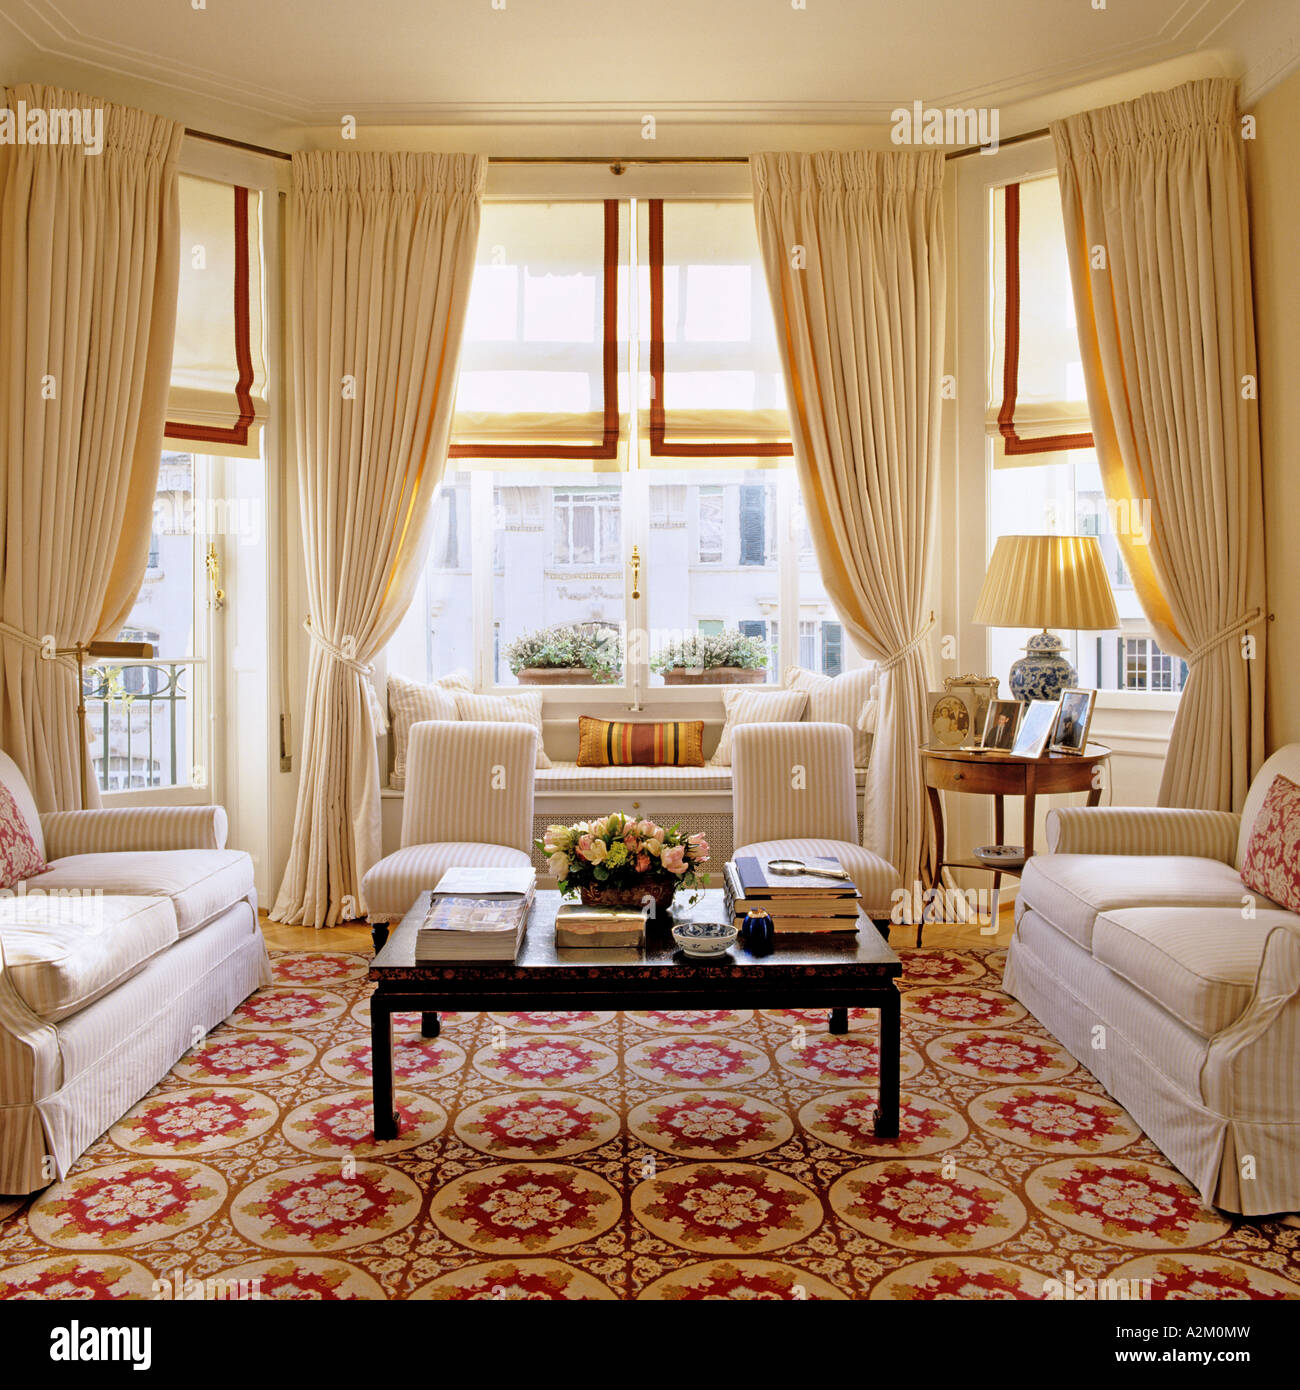 Large living room with three sofas, patterned carpet and bay windows - Stock Image